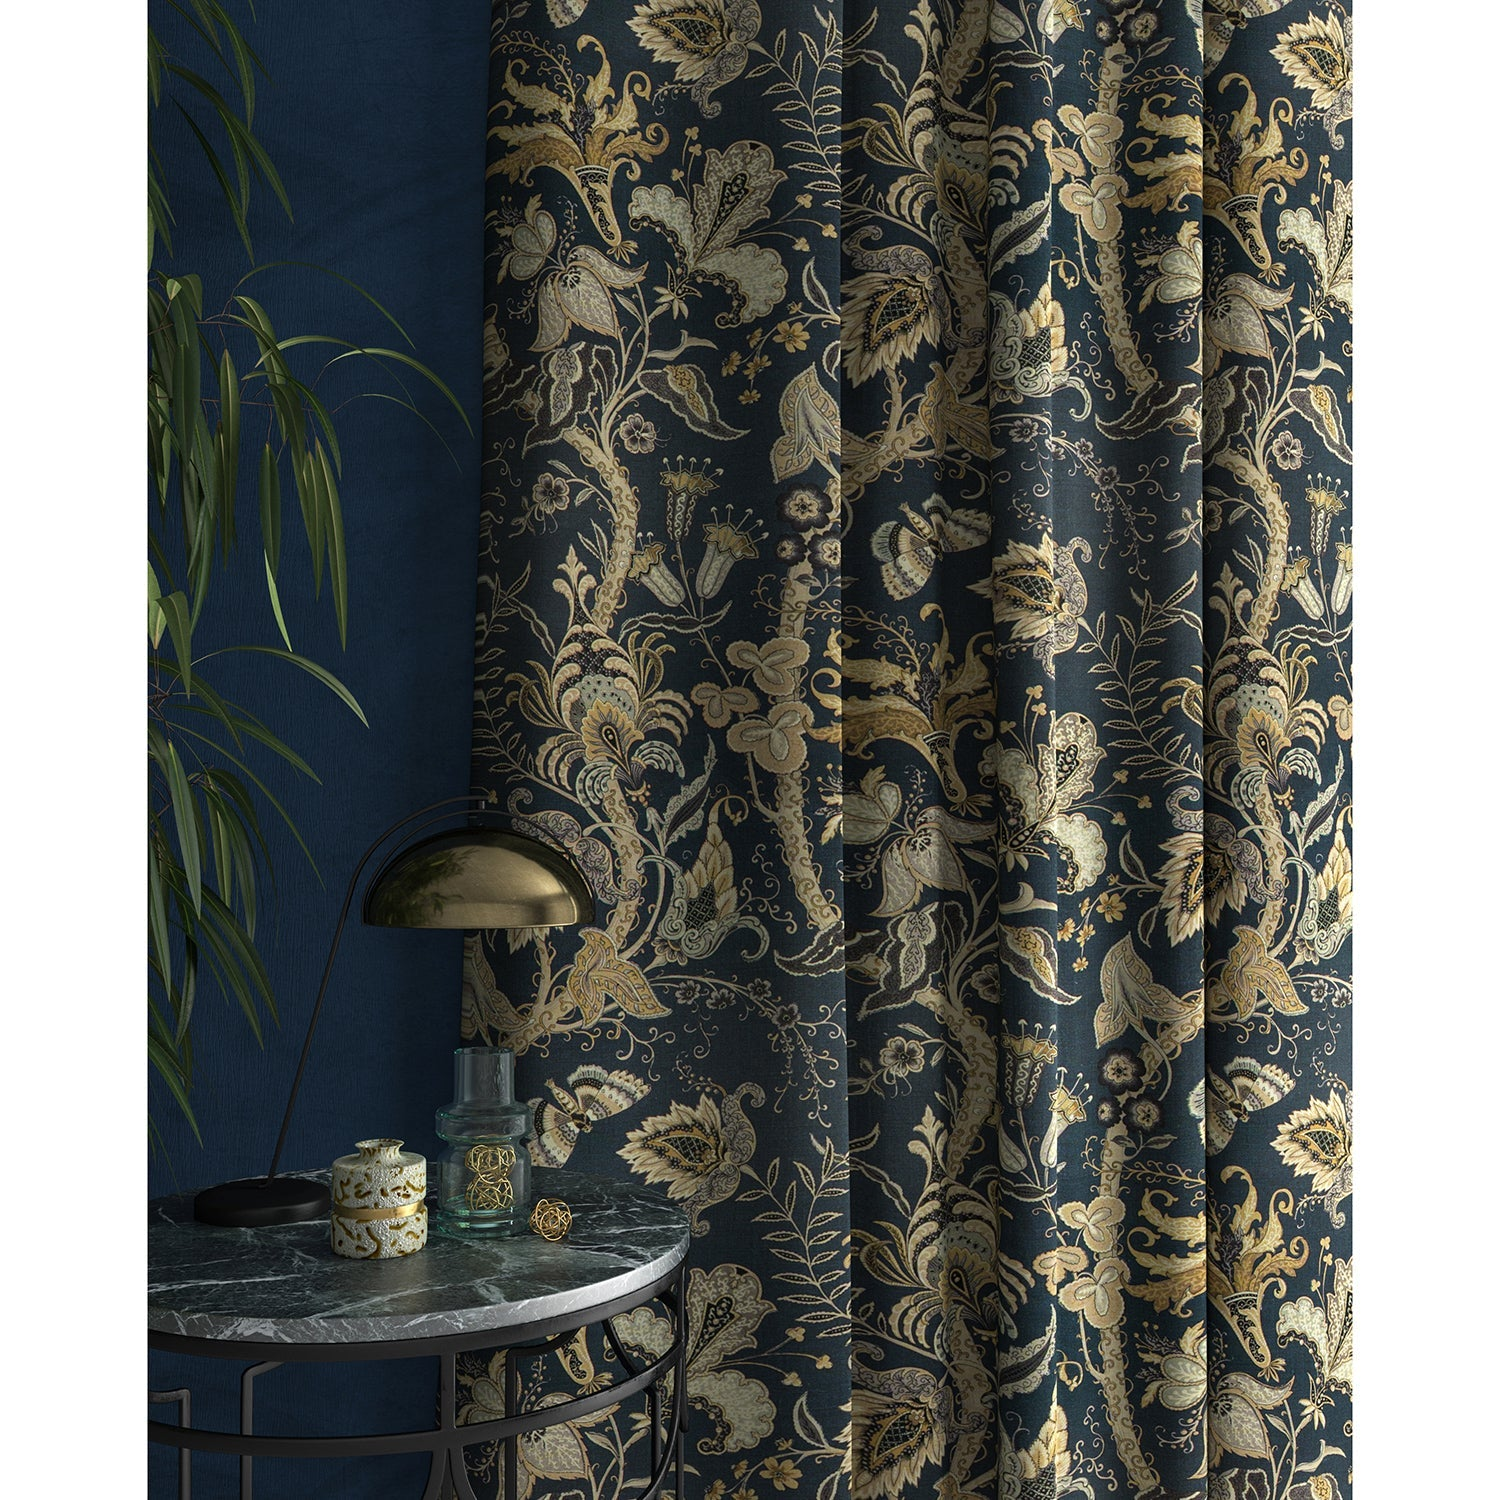 Curtains in a navy blue fabric with stylised floral design